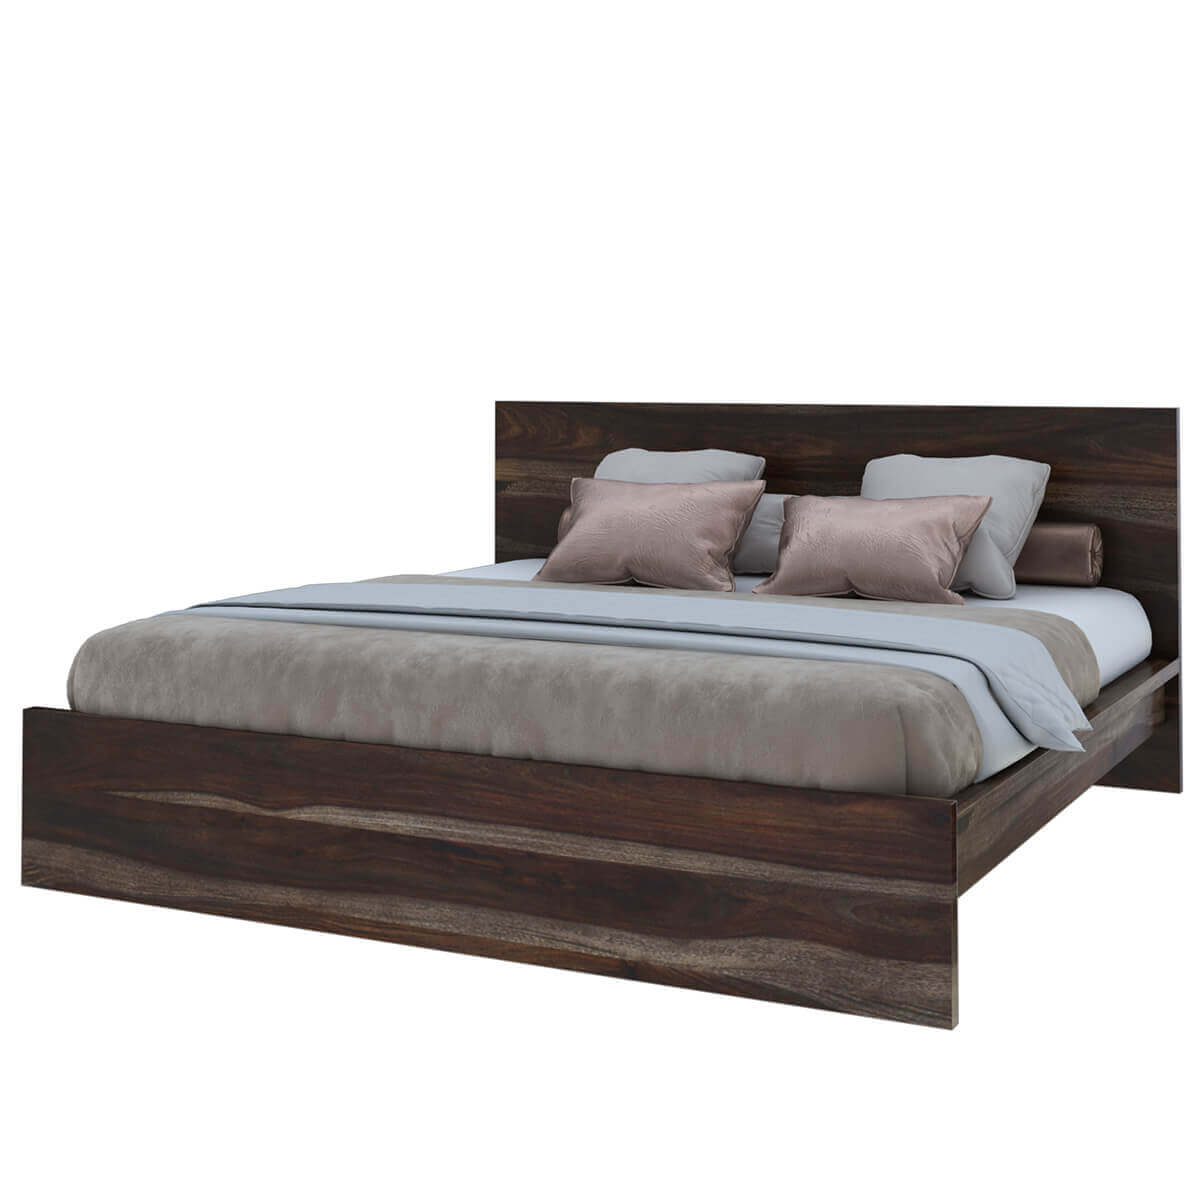 Modern simplicity solid wood platform bed frame Wood platform bed